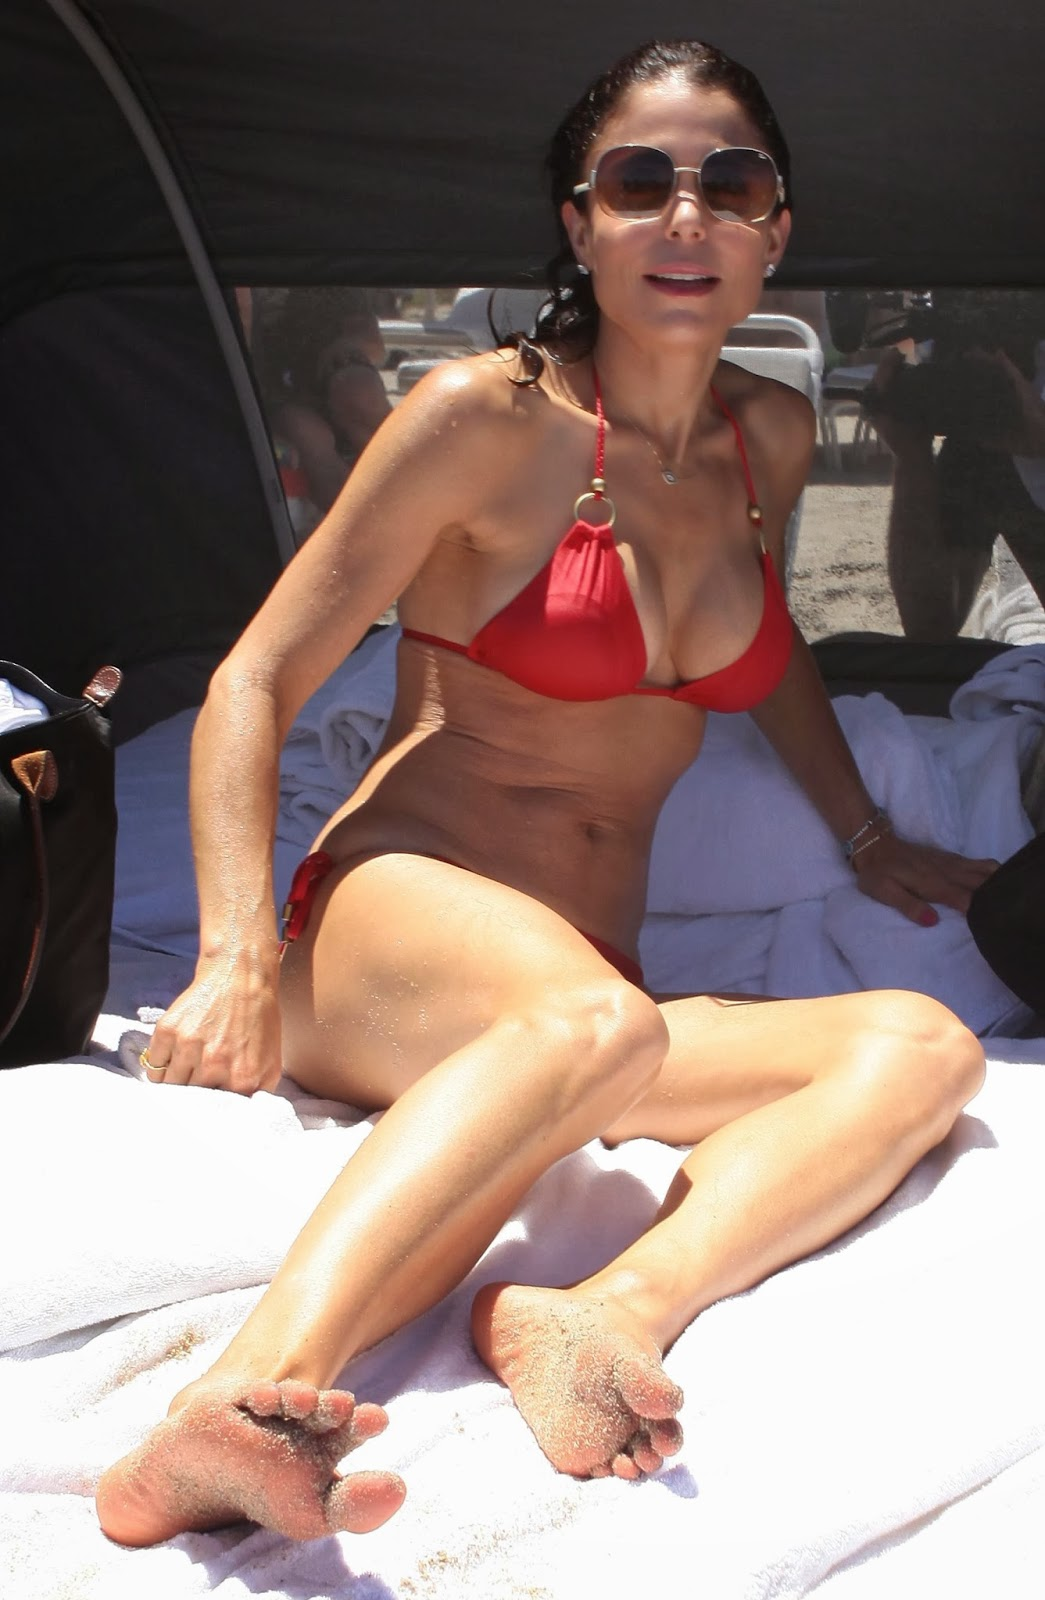 Suzanne somers topless in pool - 1 8